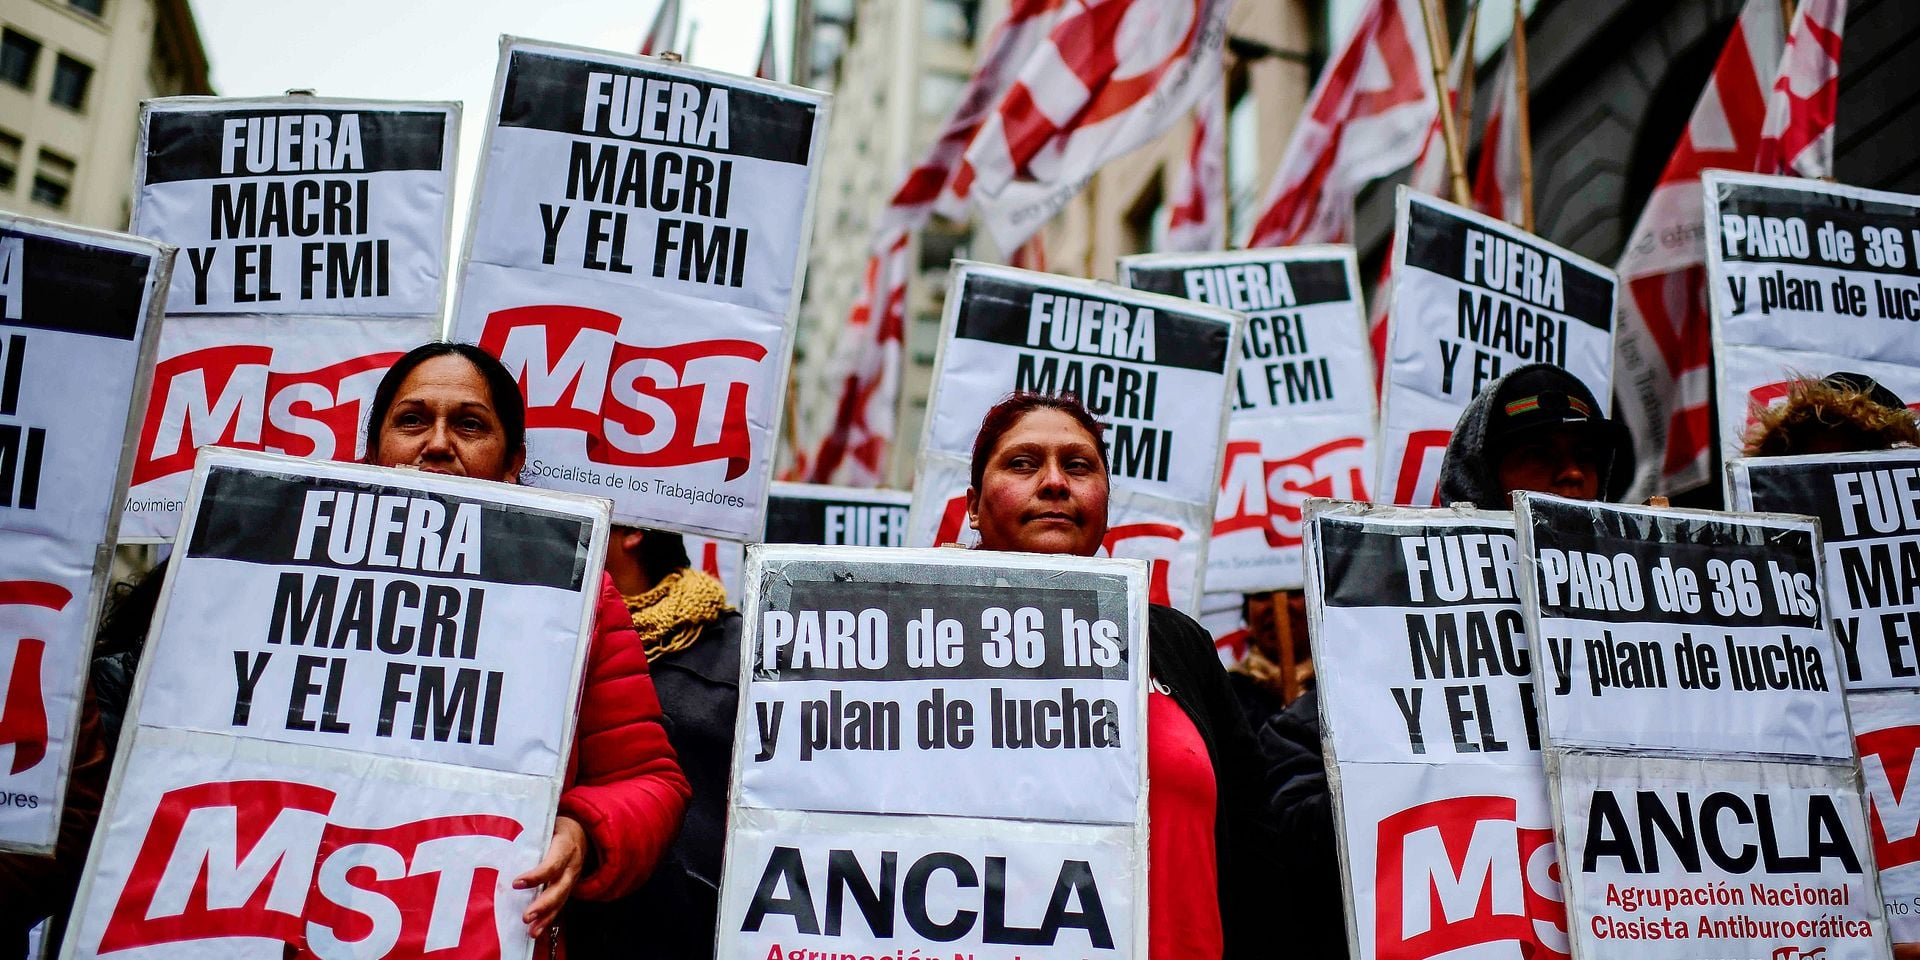 Demonstrators march along Corrientes avenue against the economic policies of the government of Argentine President Mauricio Macri during a protest on August 30, 2019, in Buenos Aires. - Recession-hit Argentina has been whipped by market volatility since business-friendly Argentine President Mauricio Macri was trounced in party primaries three weeks ago by leftist challenger Alberto Fernandez. (Photo by RONALDO SCHEMIDT / AFP)